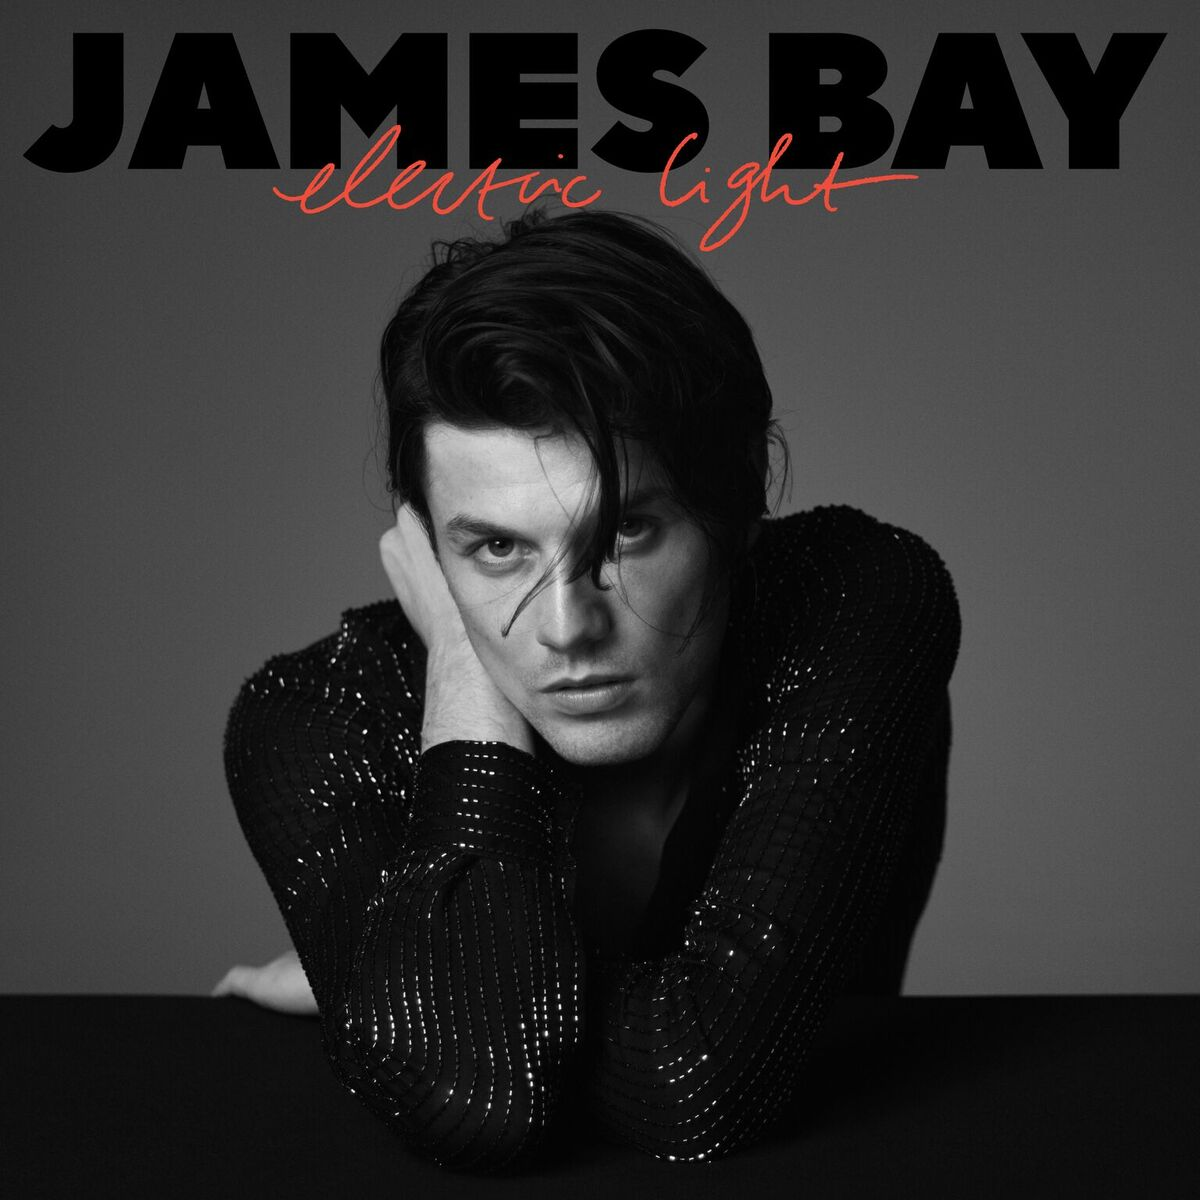 James Bay Electric Light album artwork